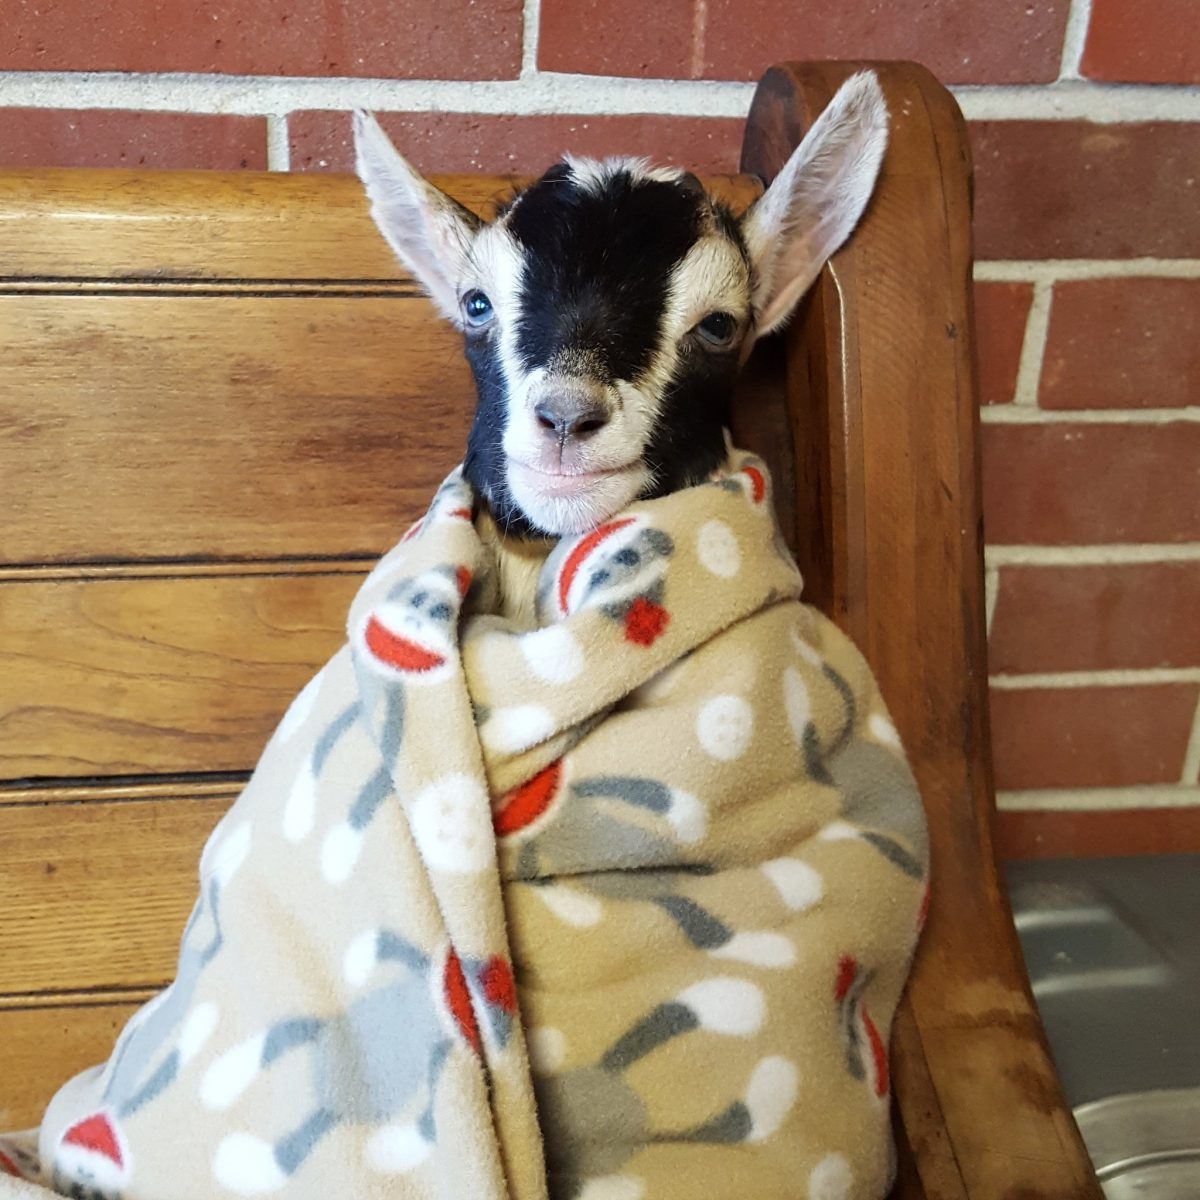 Polly in a Blanket - Source: Twitter/Goats of Anarchy